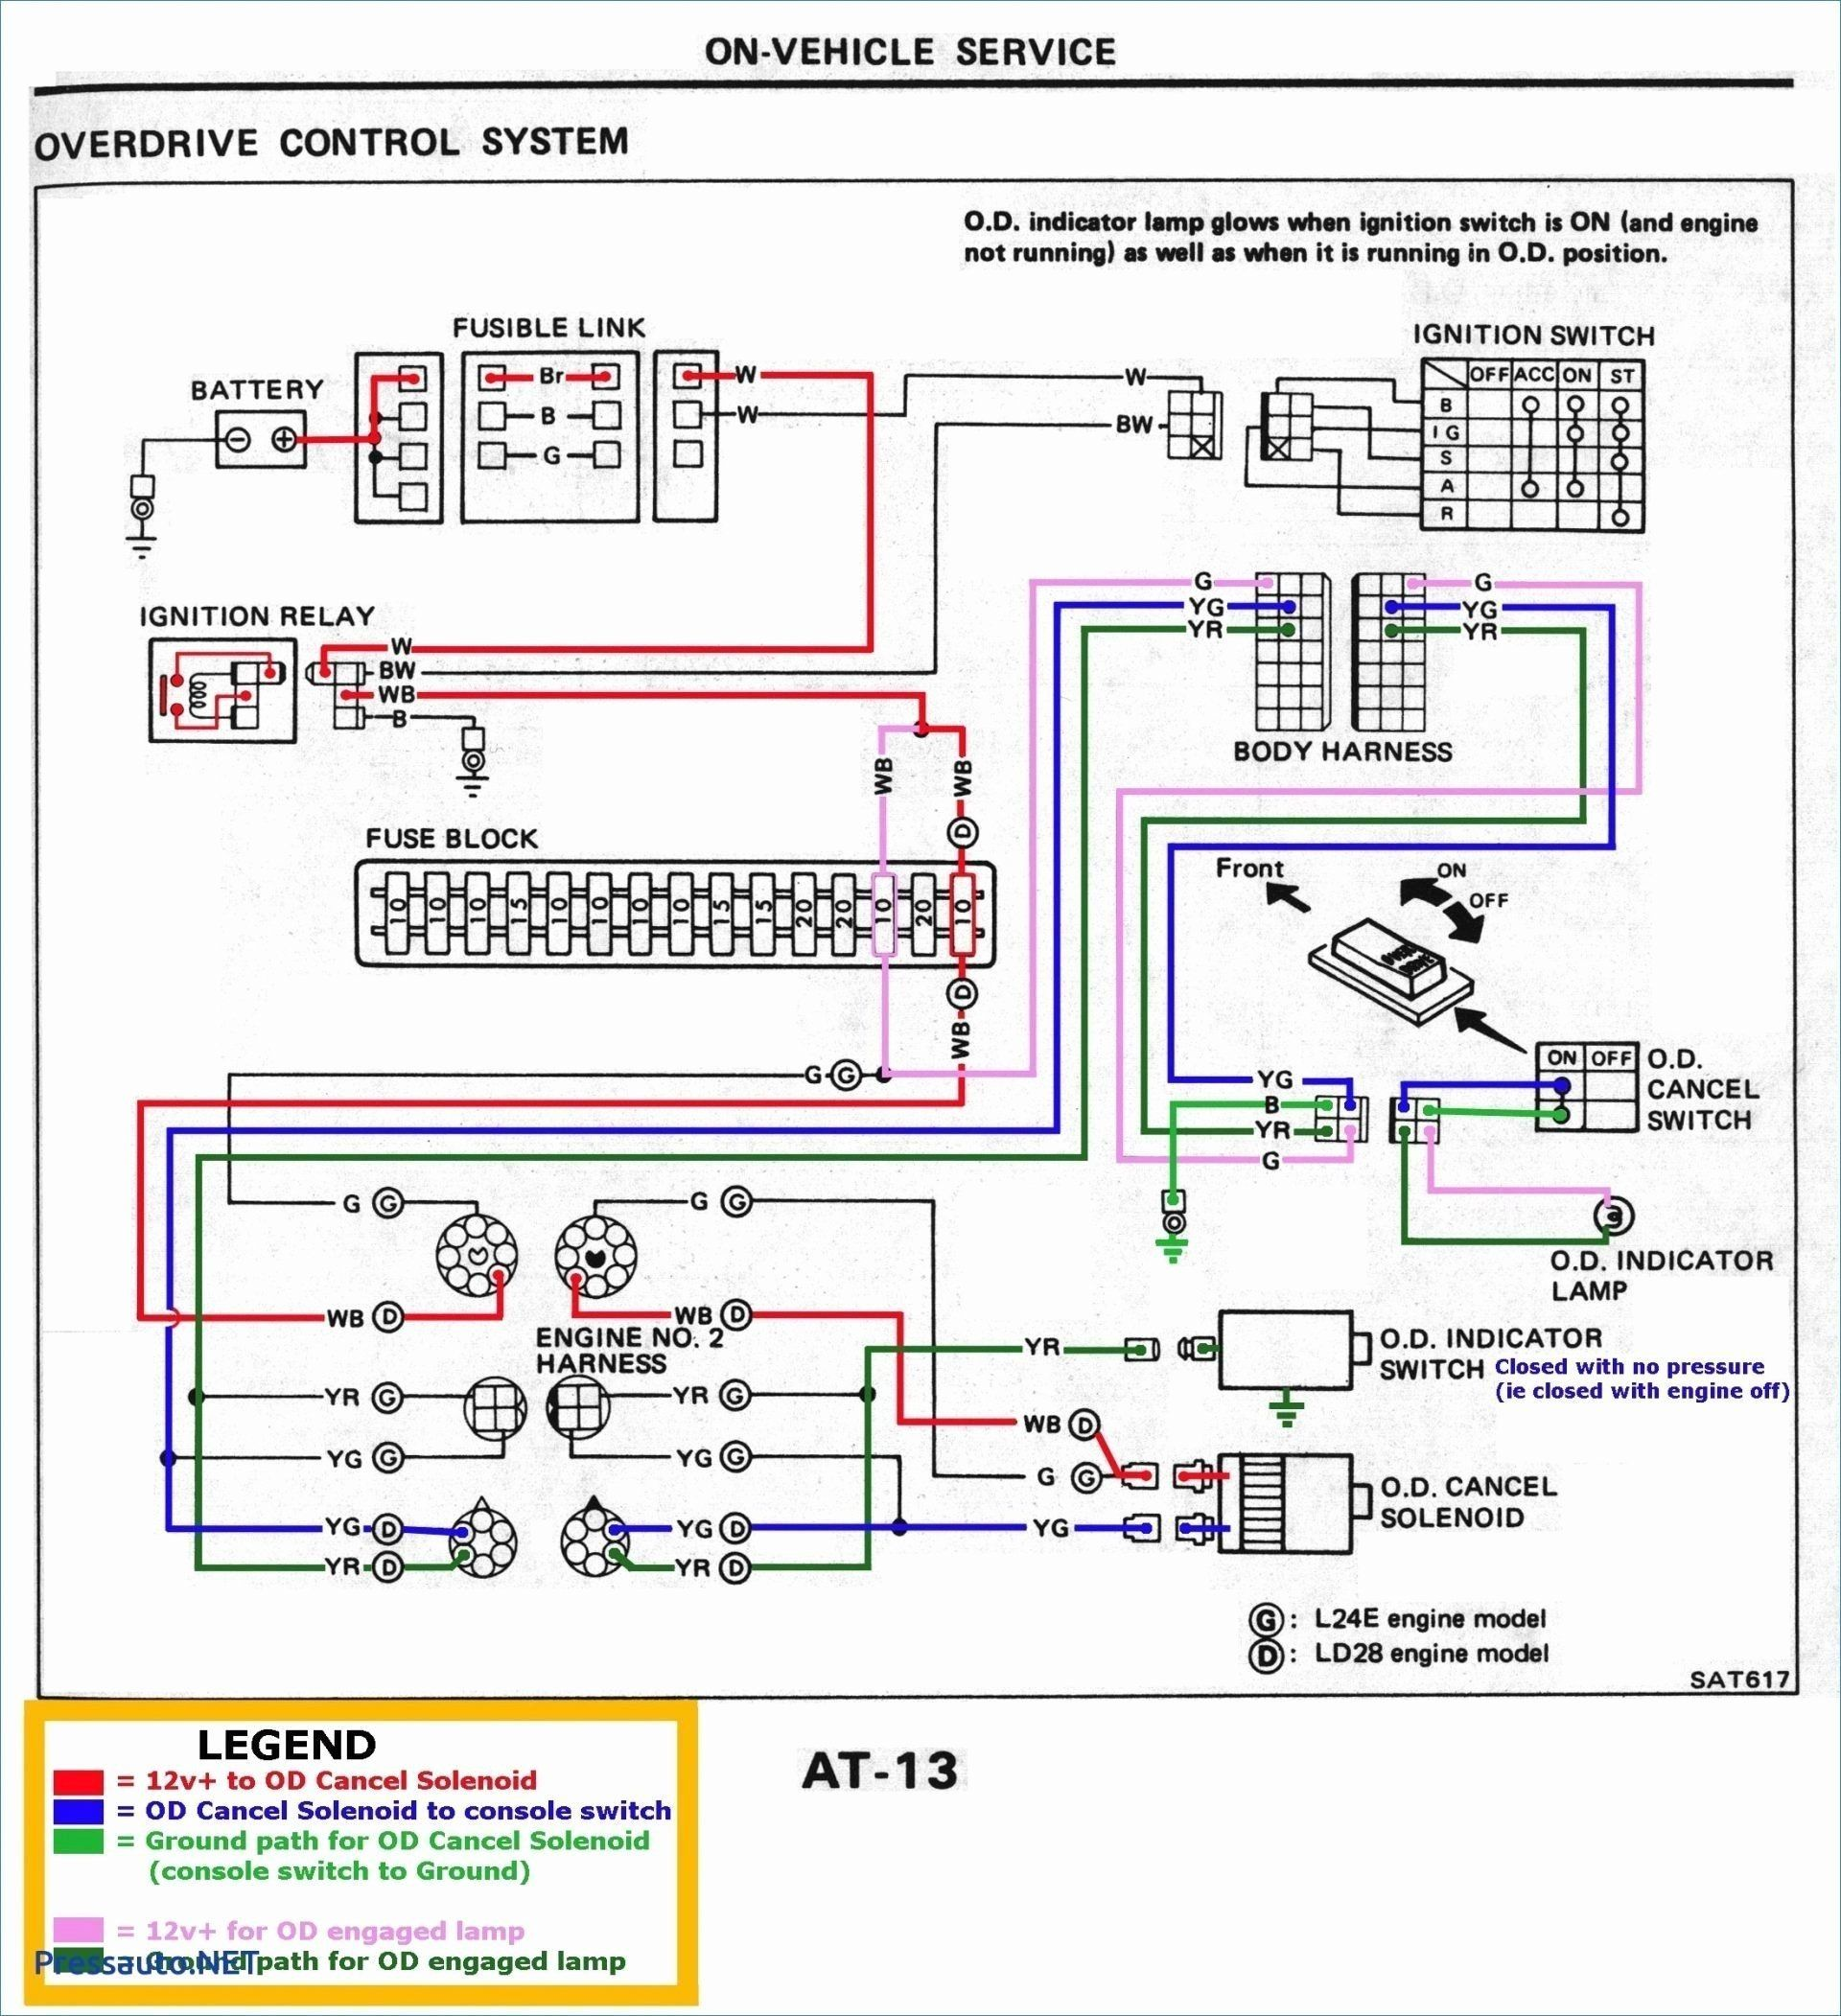 Technical Drawing Book Pdf Unique 3 Phase Wiring Diagram For House 3 Phase House Wiring In 2020 Electrical Wiring Diagram Trailer Wiring Diagram Trailer Light Wiring